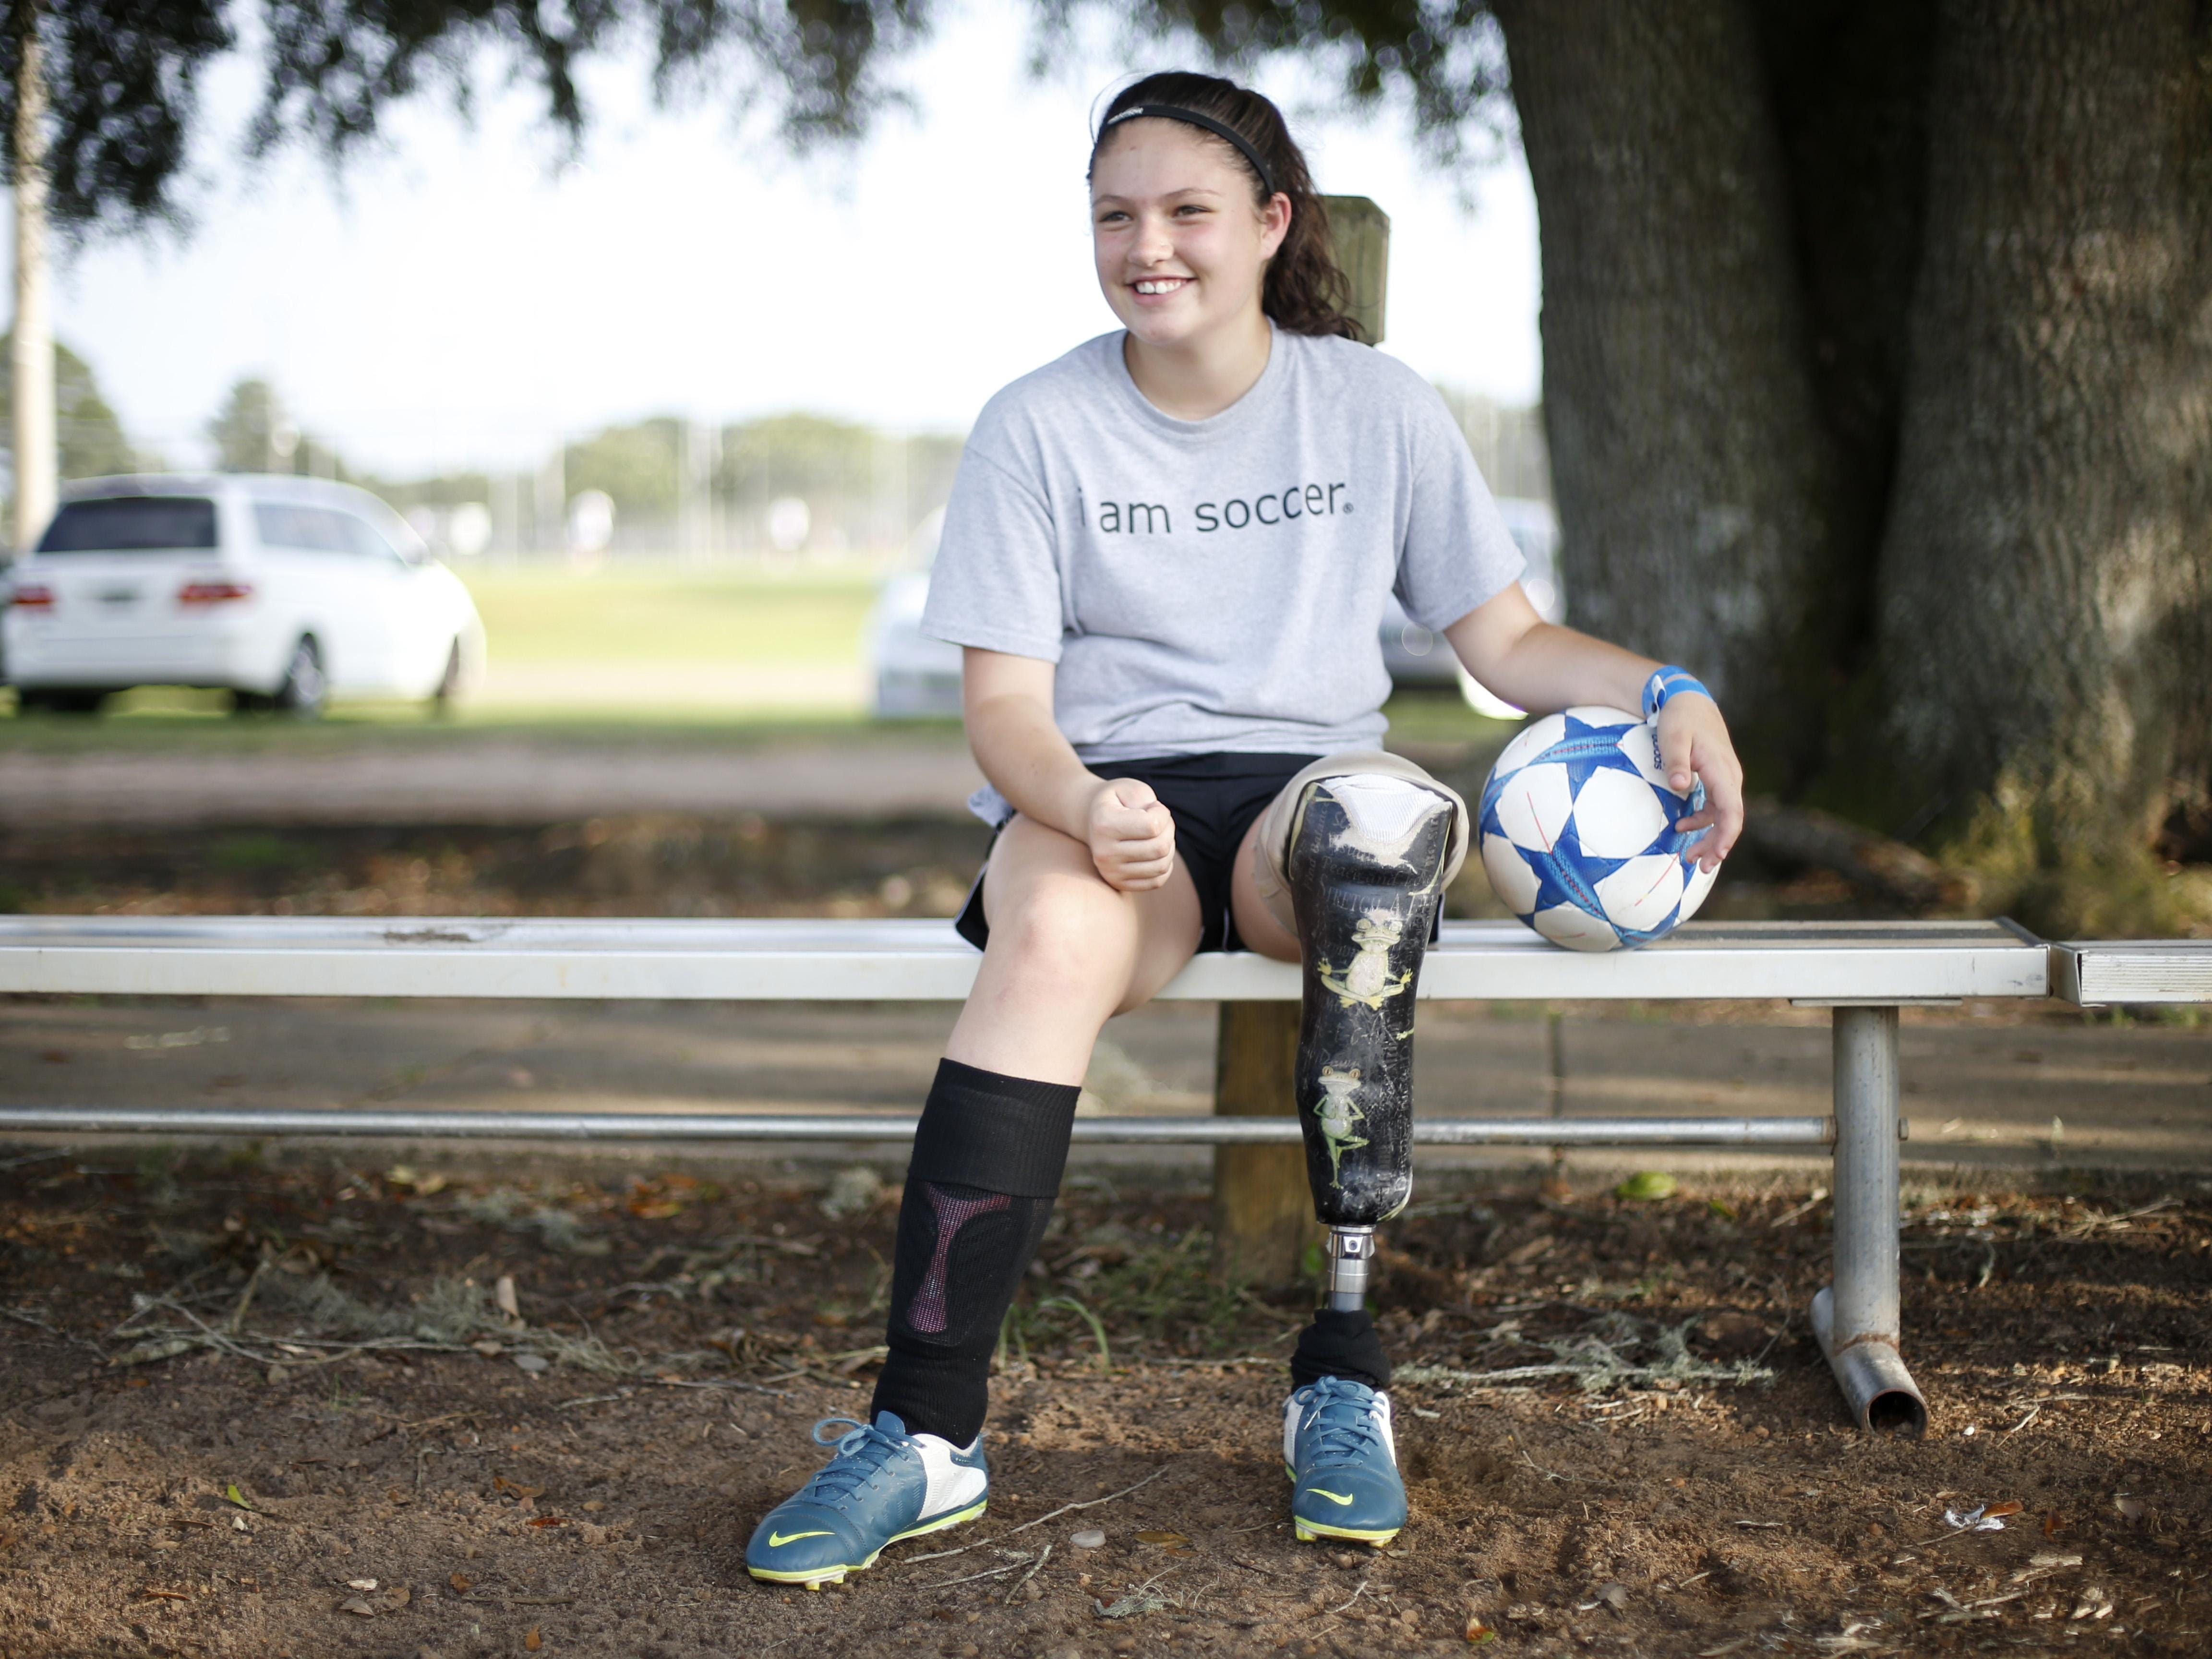 Erica Silvey, 13, has been playing soccer since she was 5 on a prosthetic that she has used nearly all of her life after having her leg amputated as an infant.